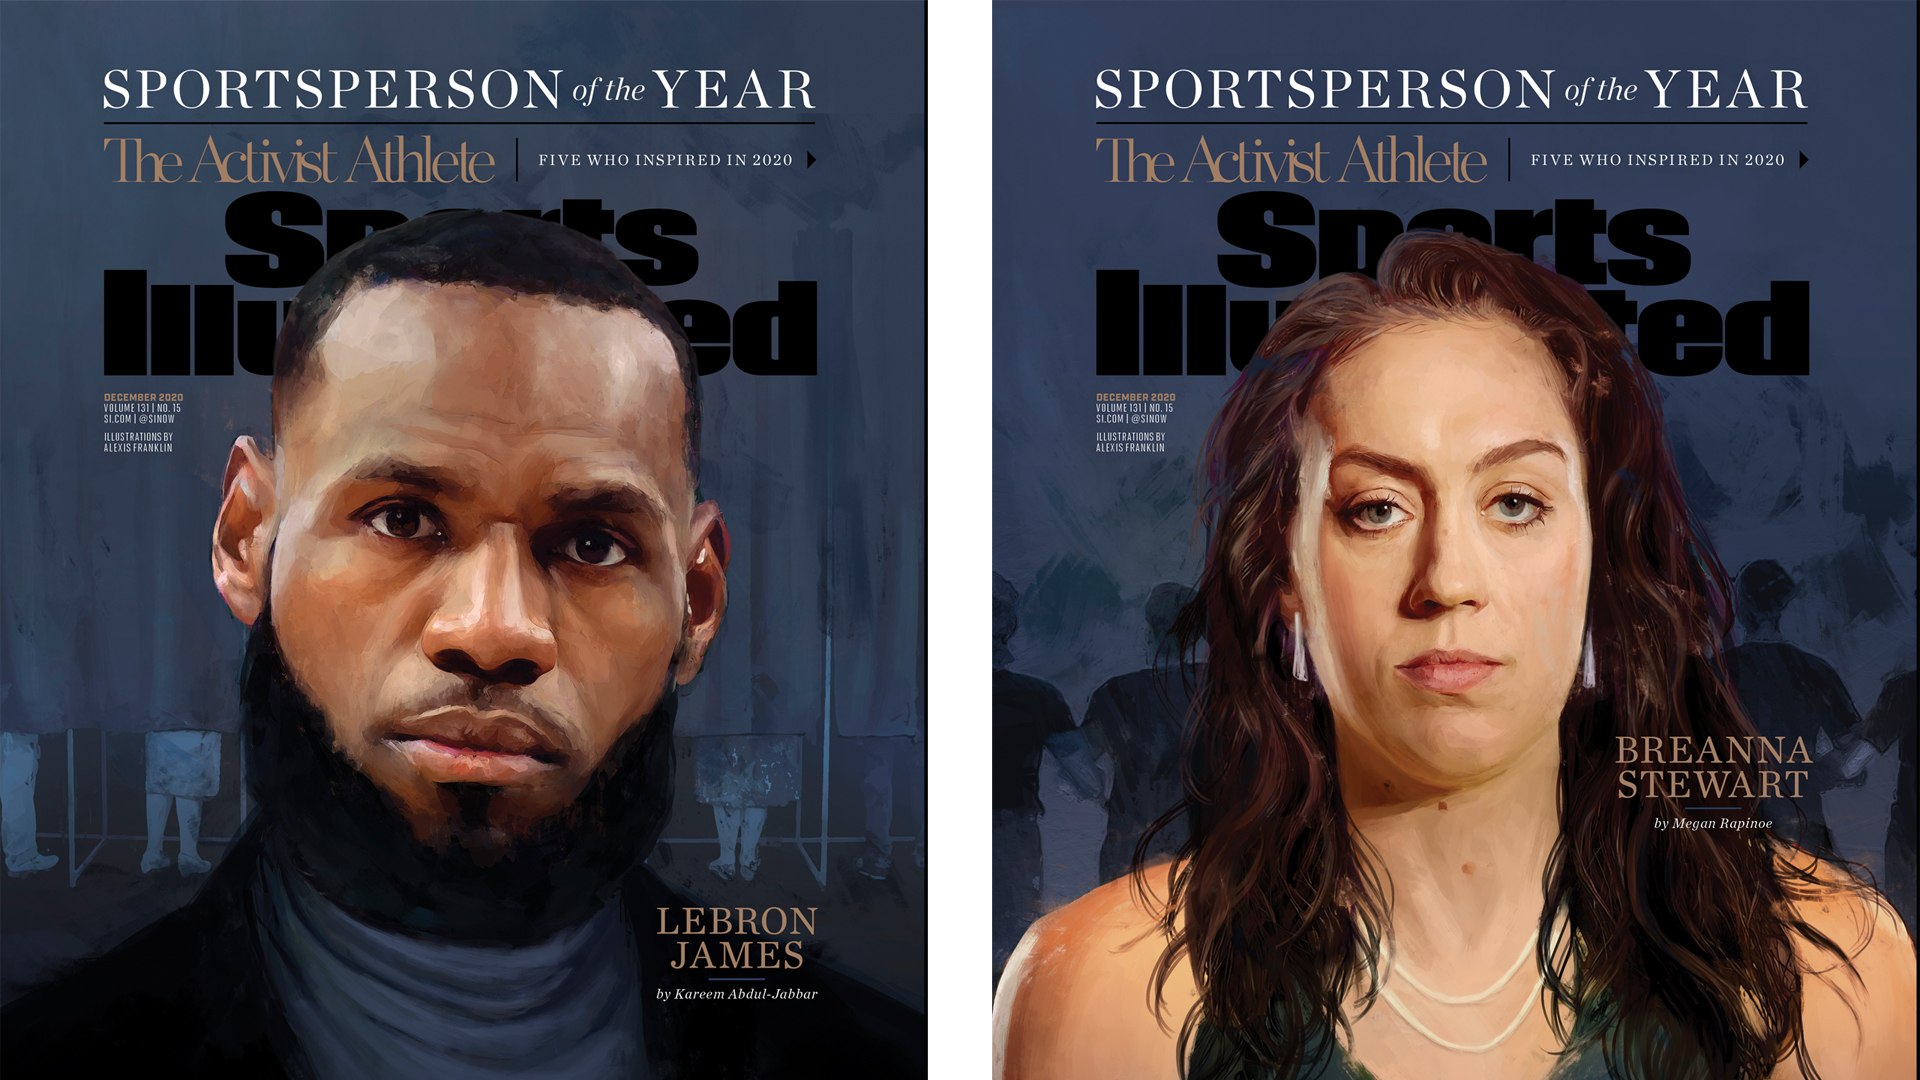 LeBron James and Breanna Stewart